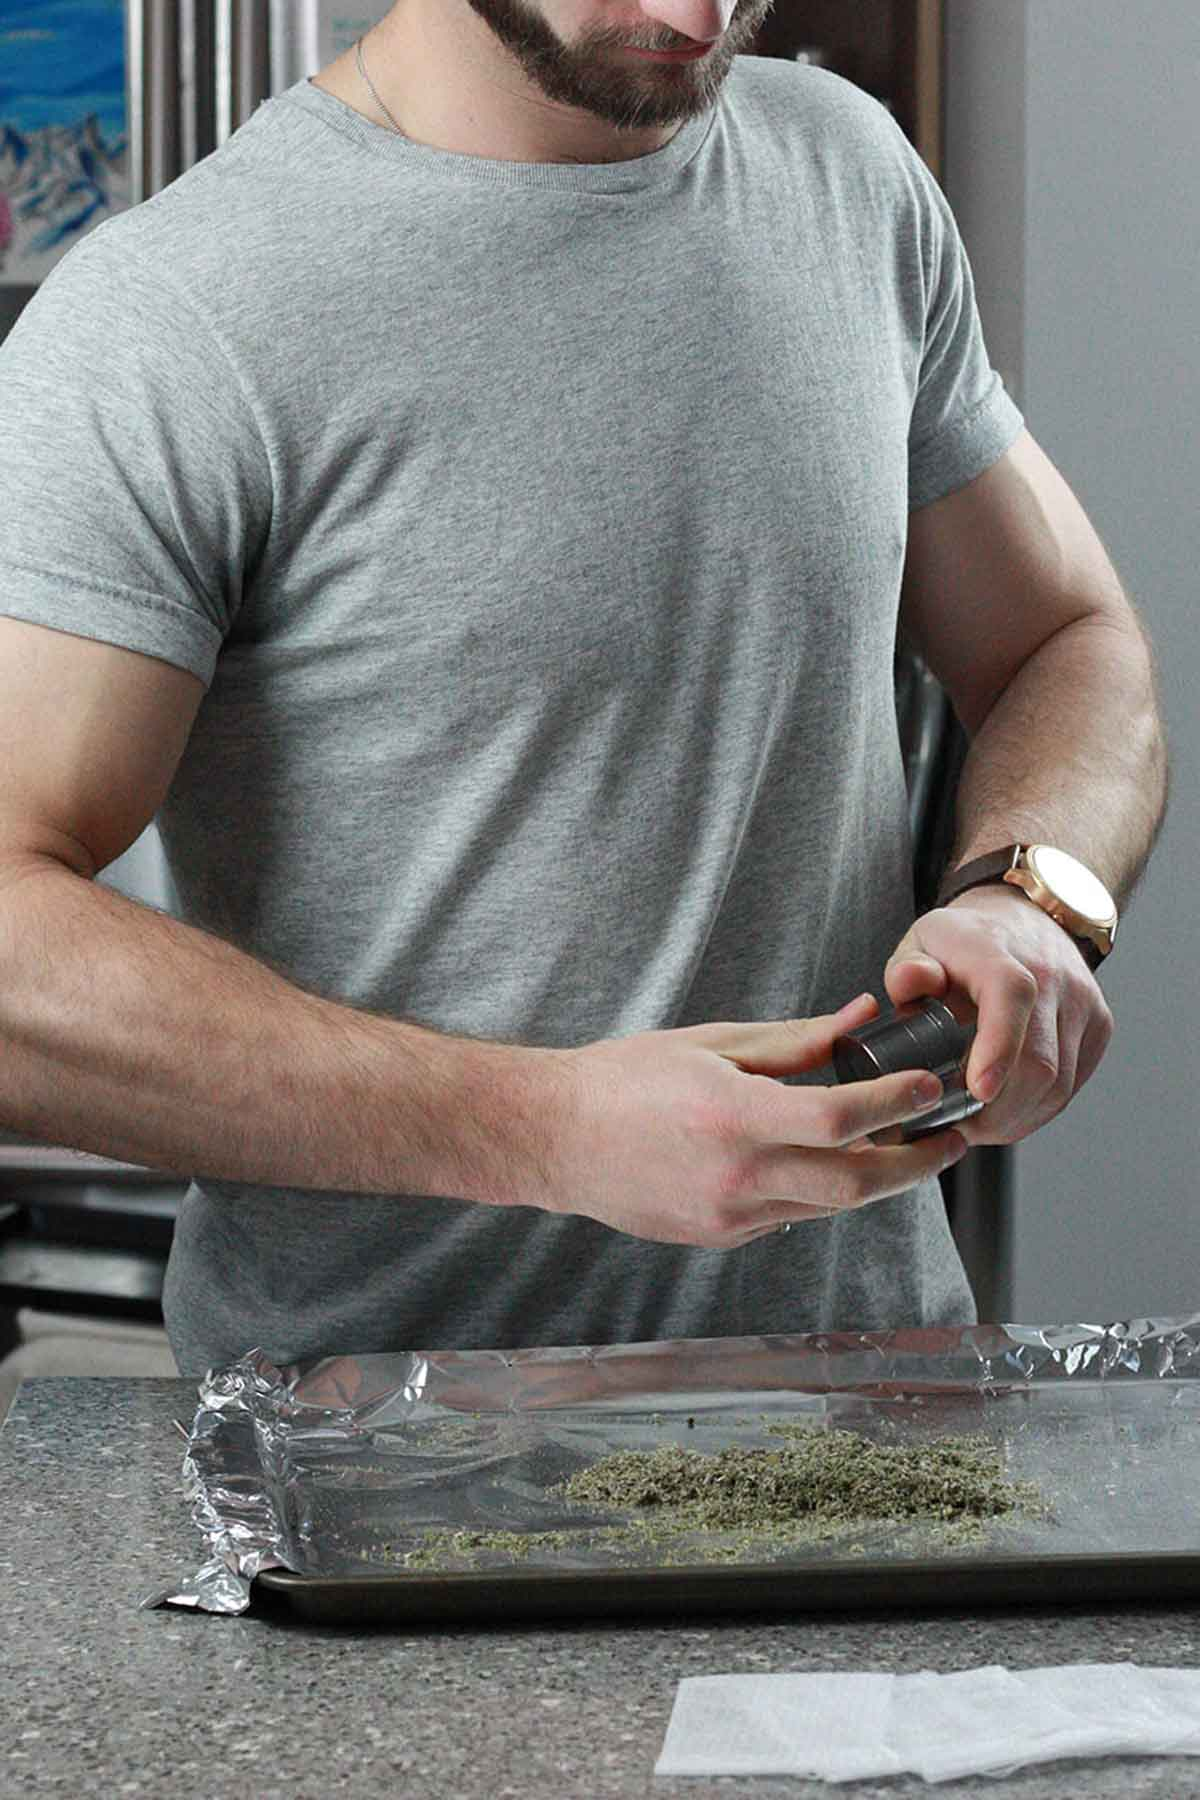 Man grinding cannabis onto a baking sheet to be decarburized in an oven